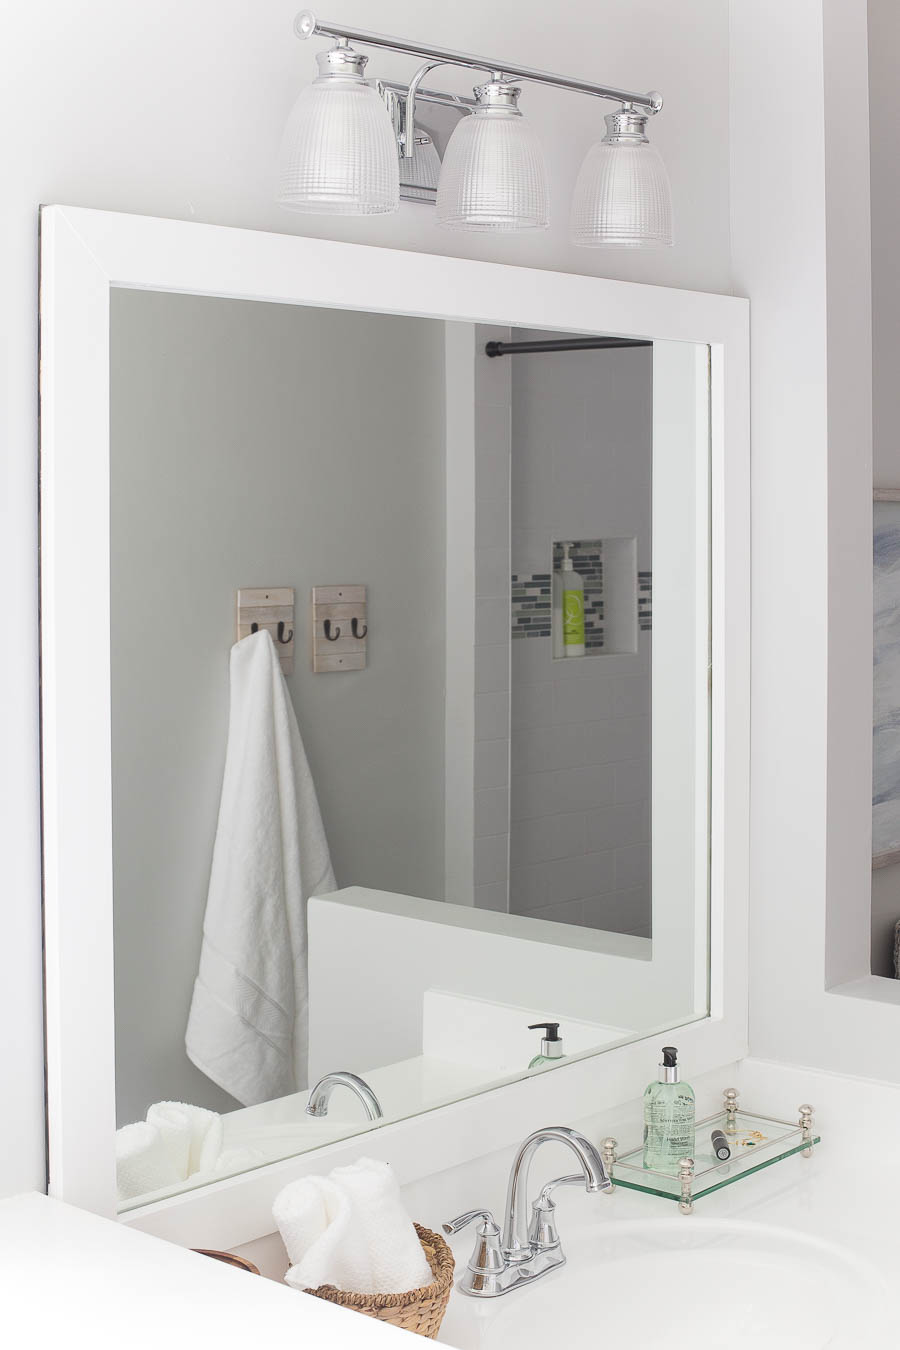 frames for bathroom wall mirrors how to frame a bathroom mirror easy diy project 23203